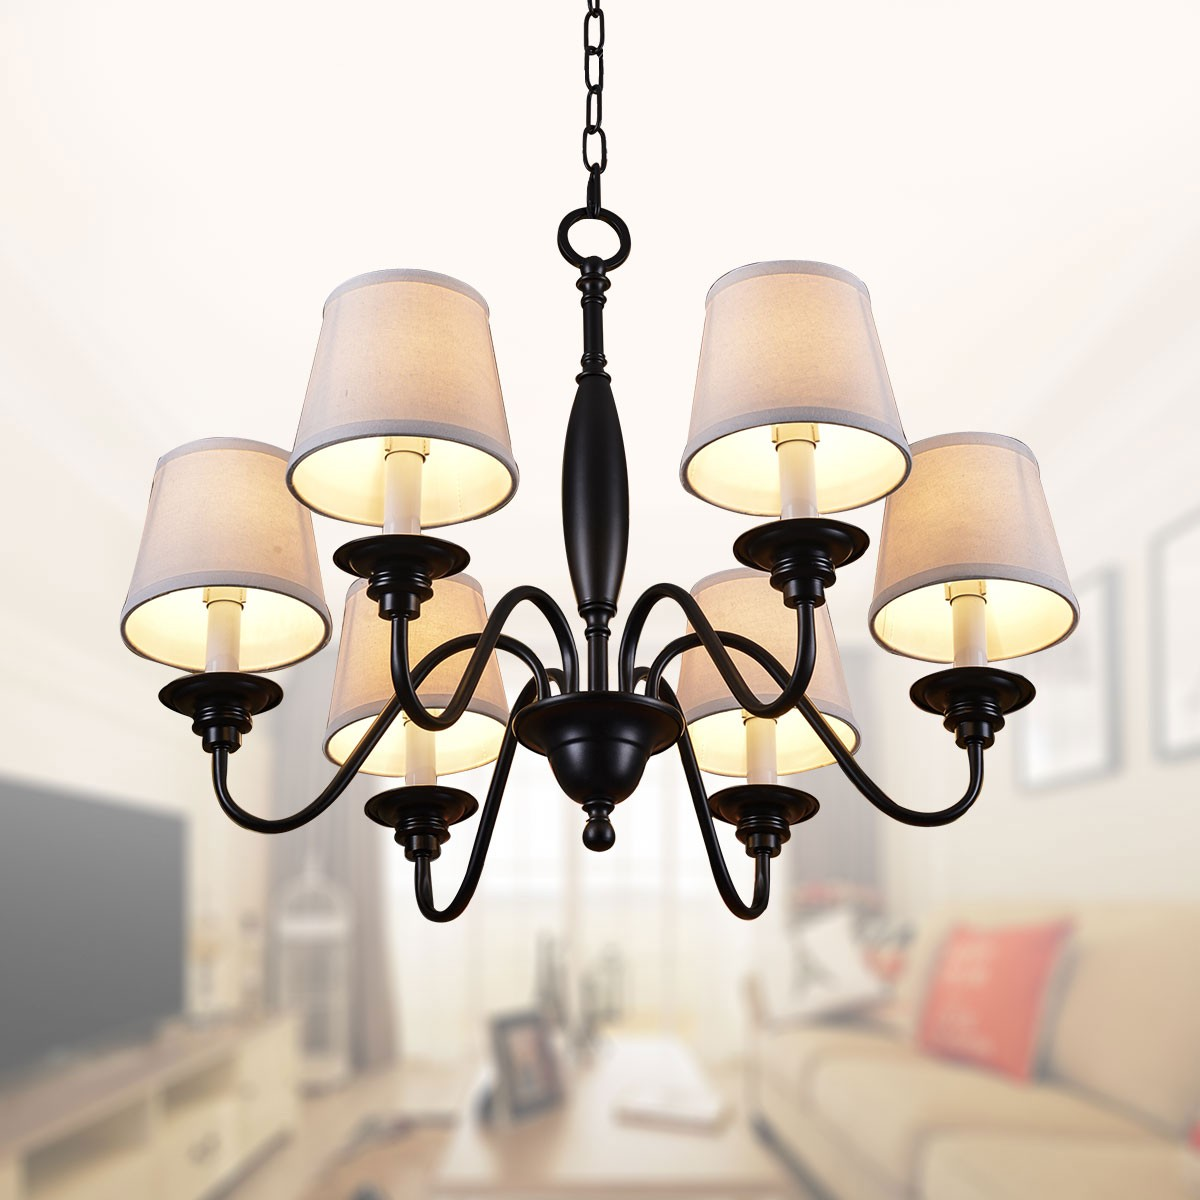 6-Light Black Wrought Iron Chandelier with Cloth Shades ...